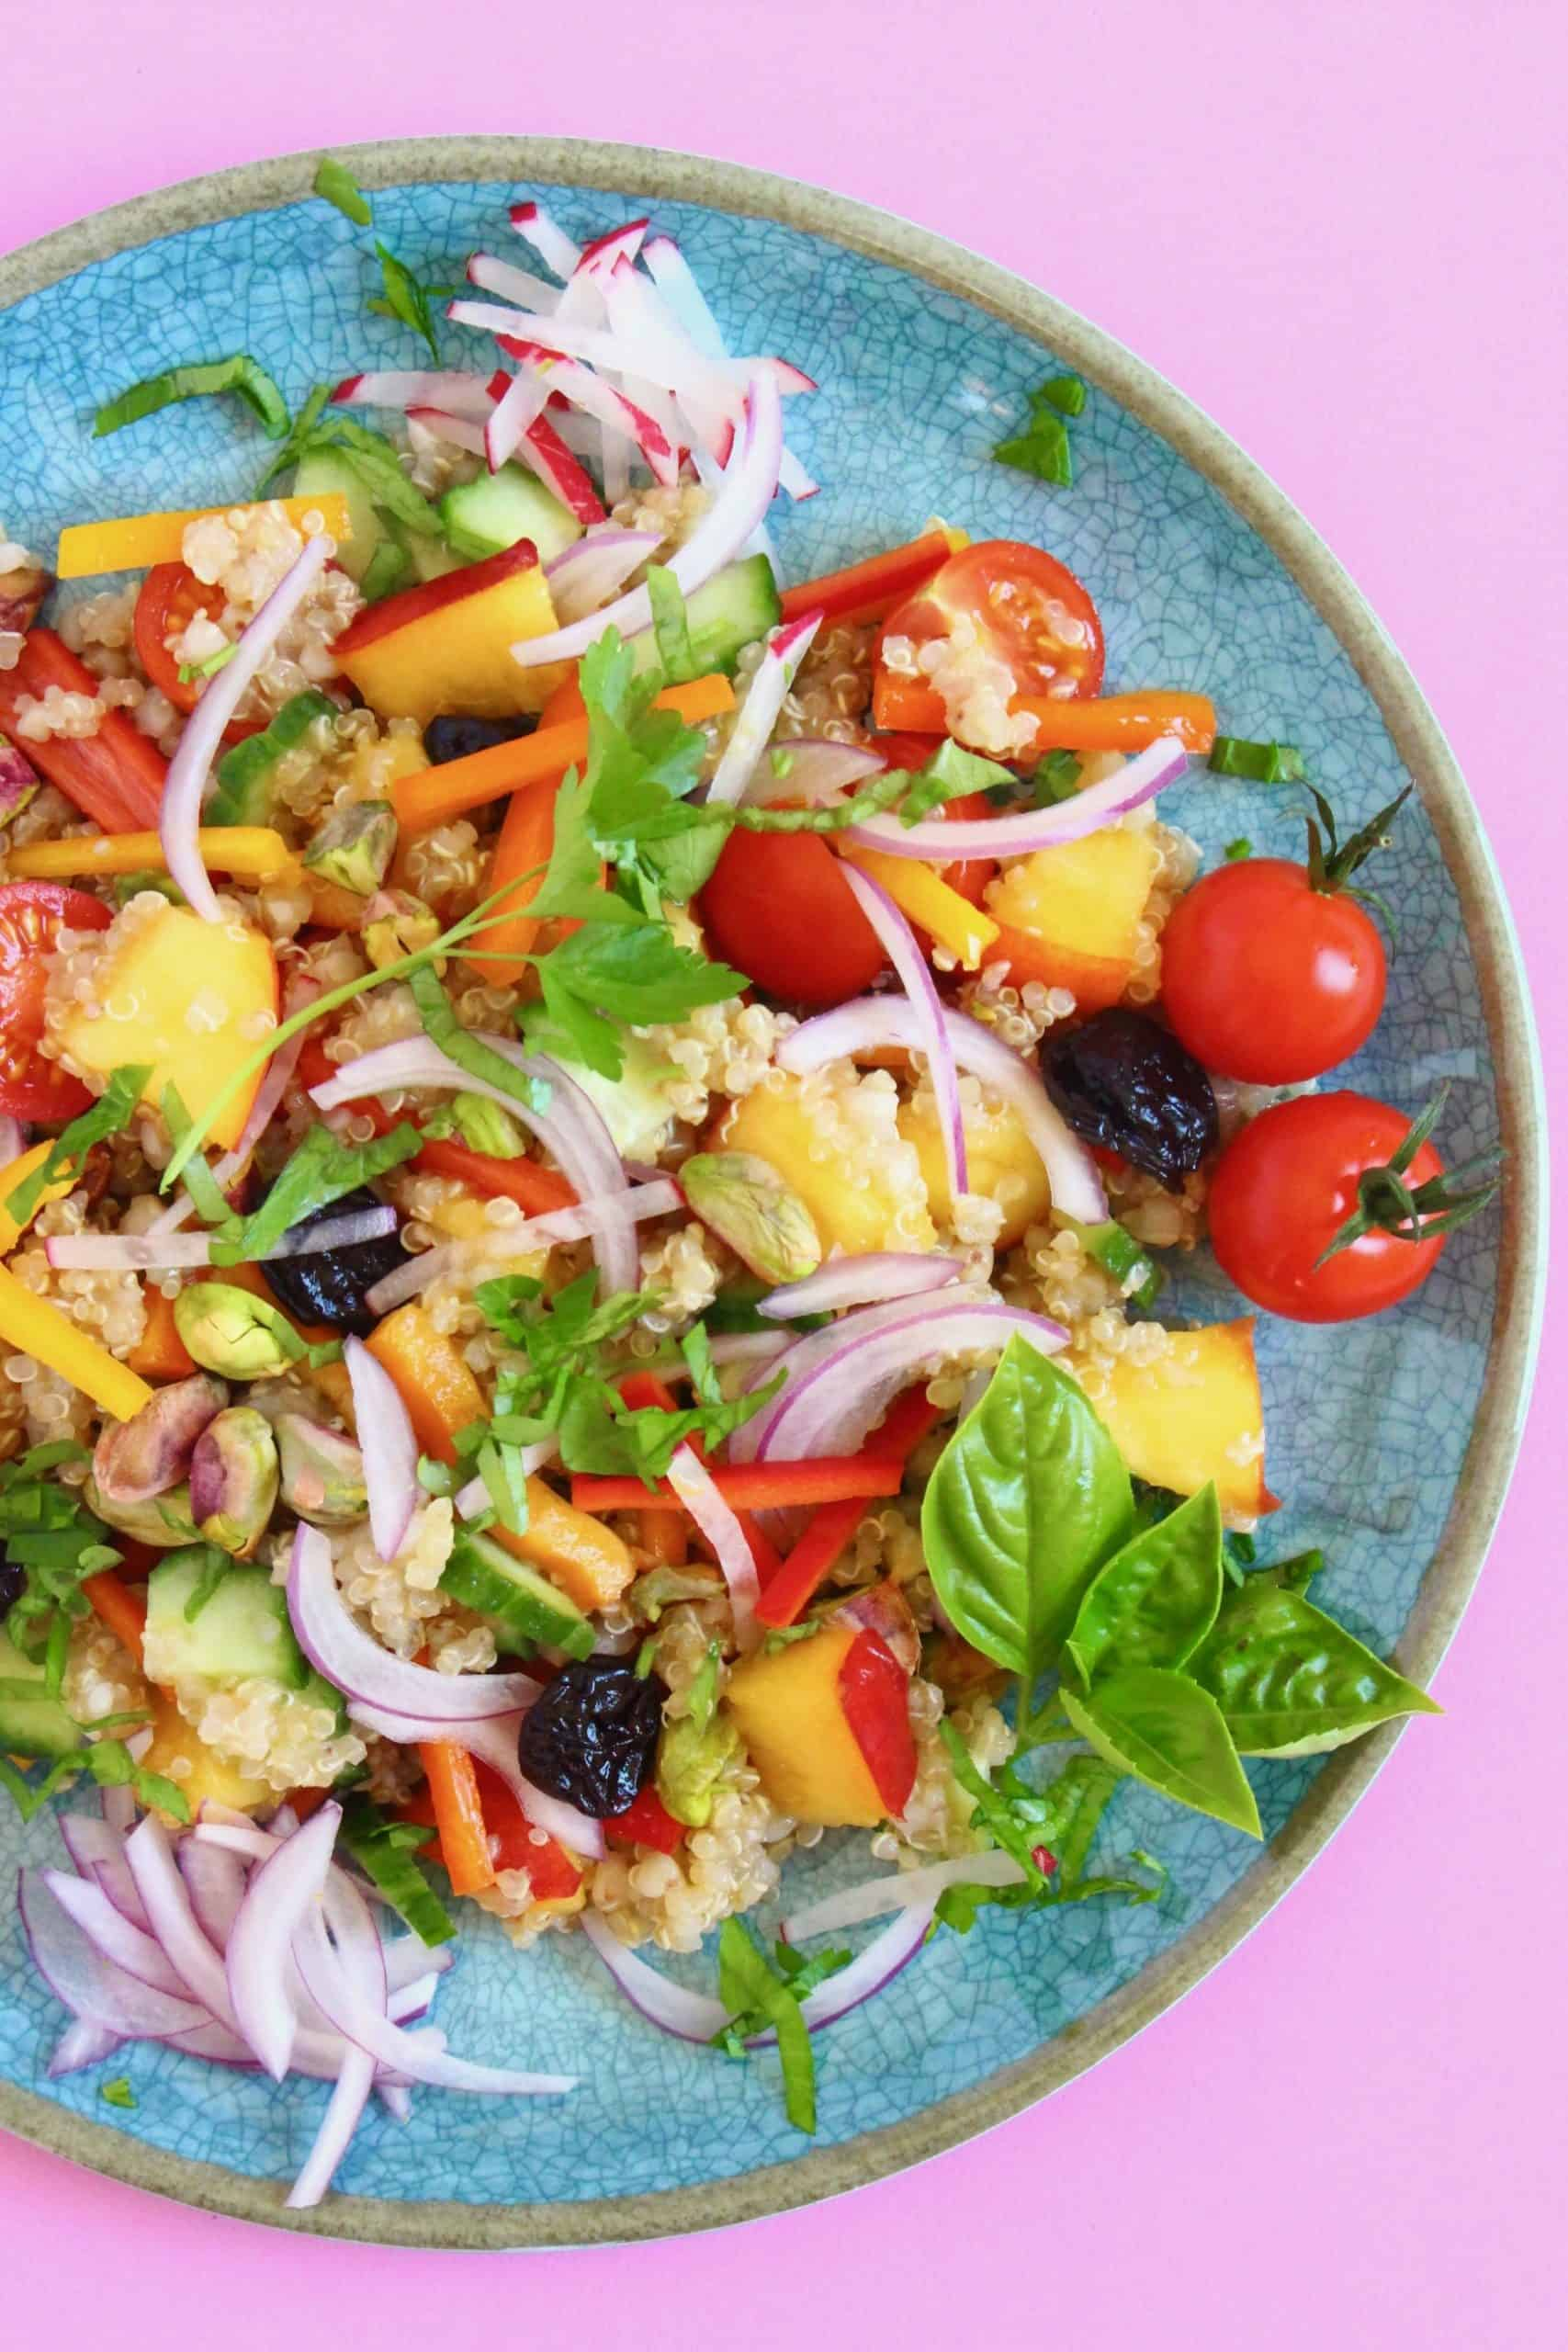 Quinoa tabbouleh with chopped nectarines, sliced red onion and herbs on a blue plate